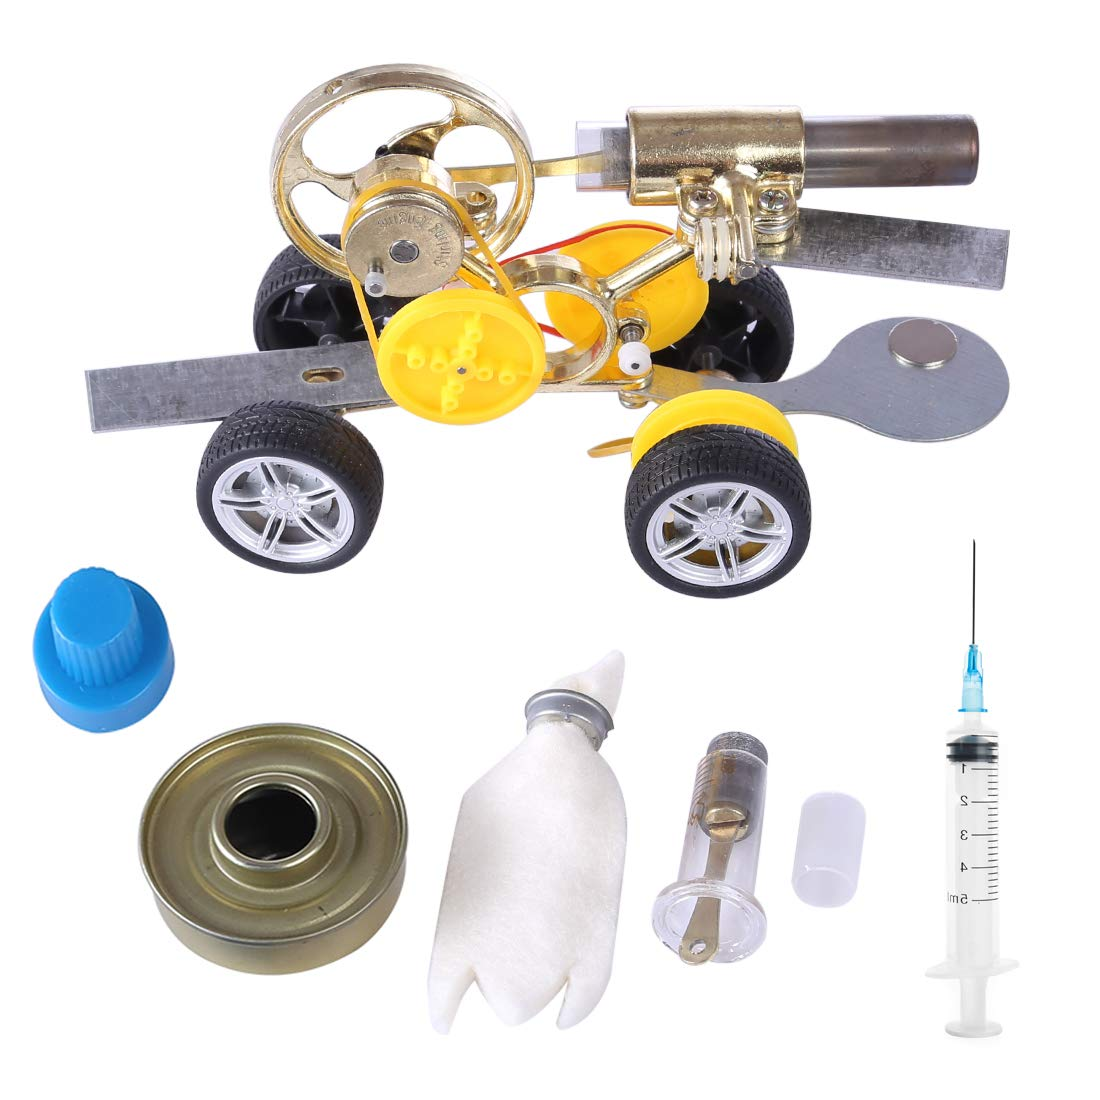 ZUJI Stirlingmotor Bausatz Motor Stirling Engine Kit DIY Auto Fahren Modell Educational Physik Spielzeug